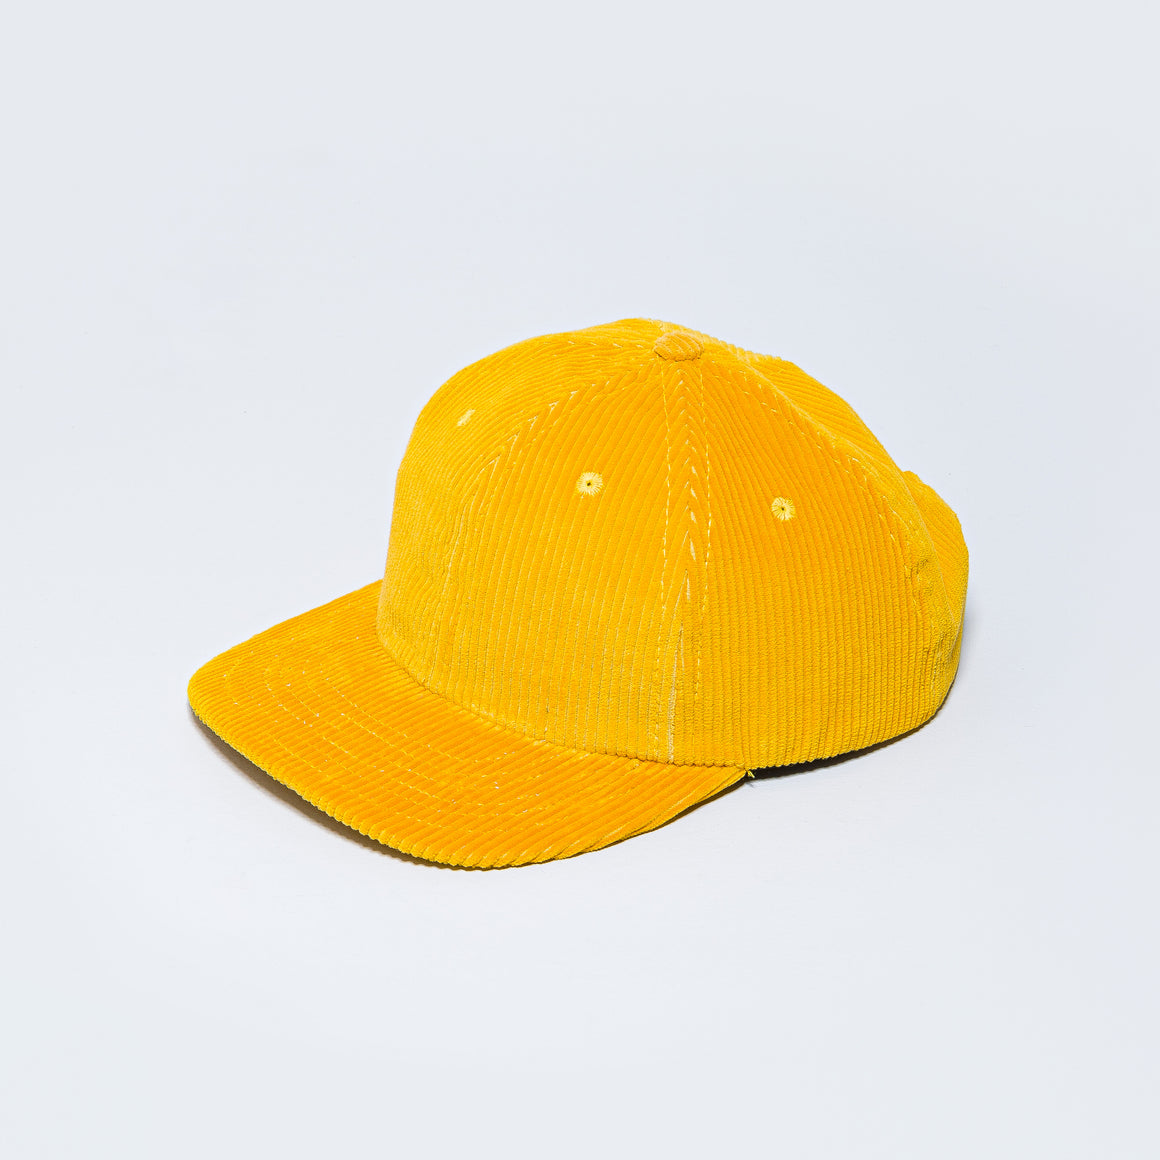 Lite Year - Six Panel Cap - Gold Eight Wale Corduroy - Up There